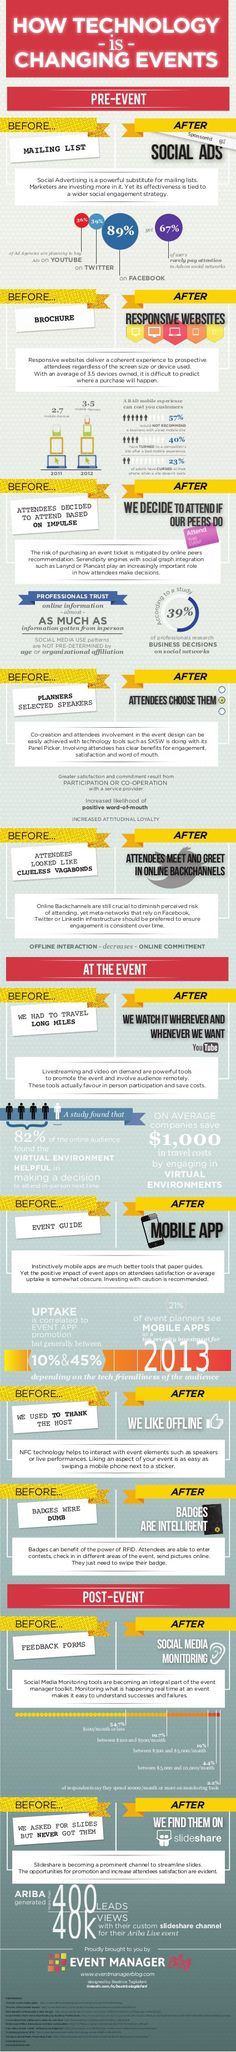 Event Technology Infographic by Julius Solaris, via Slideshare